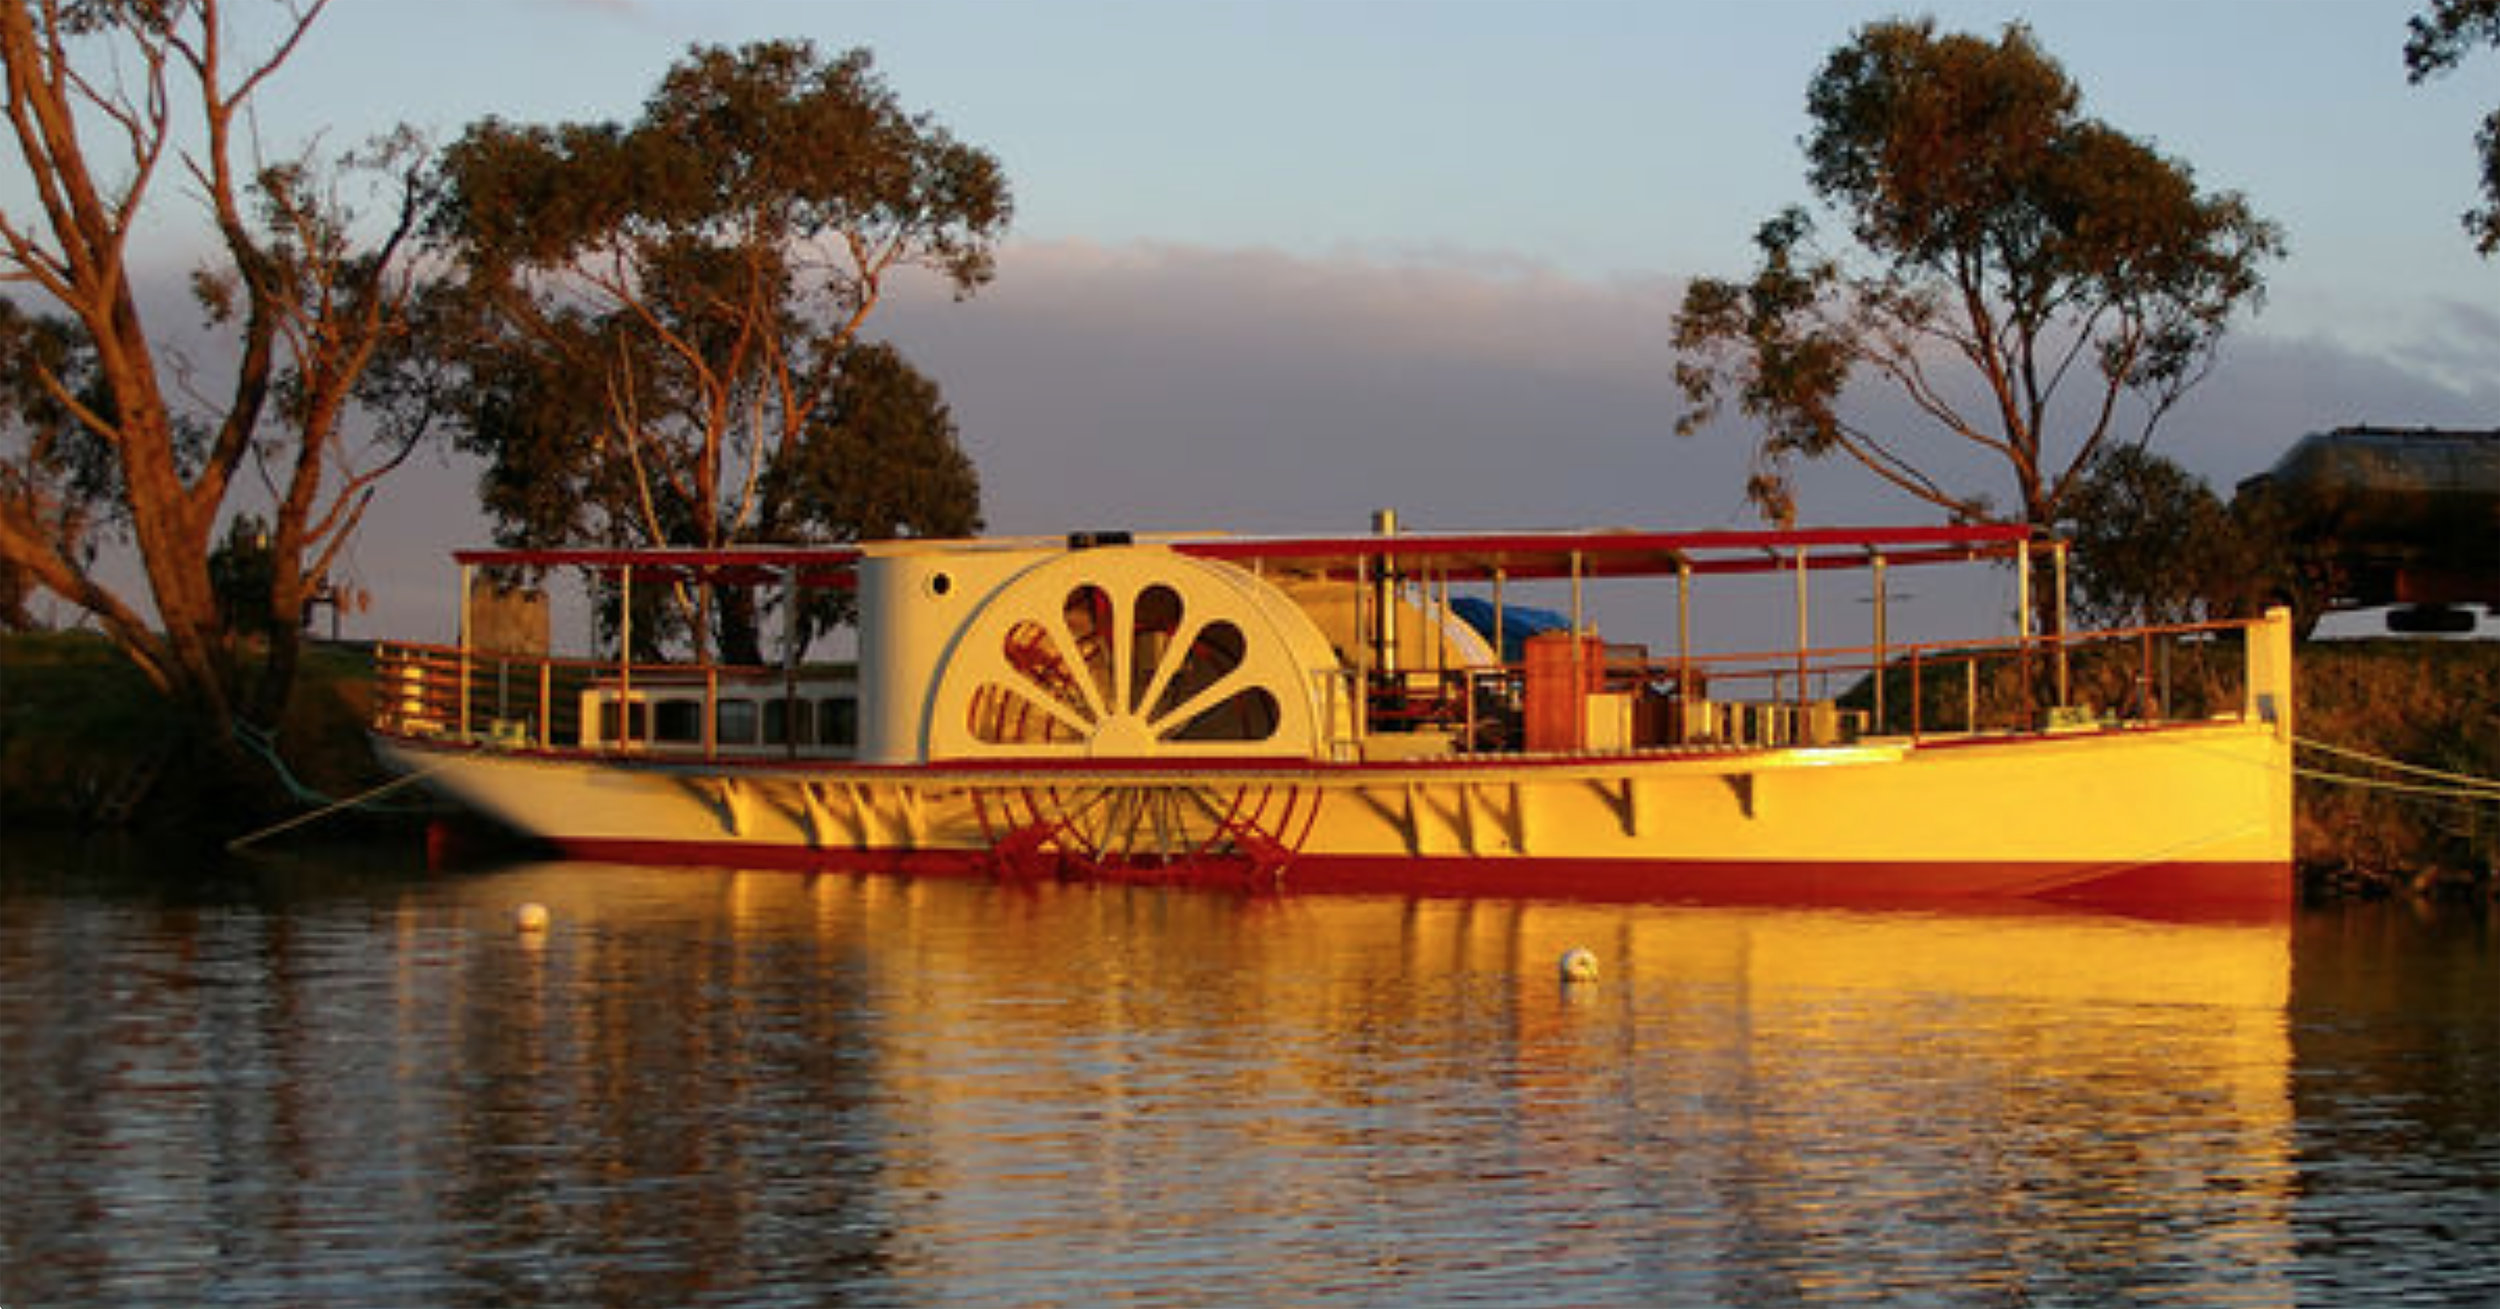 This image was taken, just after the launch of Paddle Steamer Curlip in 2008. She is a truly beautiful, traditional Paddle Steamer, her sleek lines and counter stern, allow her steam at a maximum speed of just on 6 nautical miles per hour.